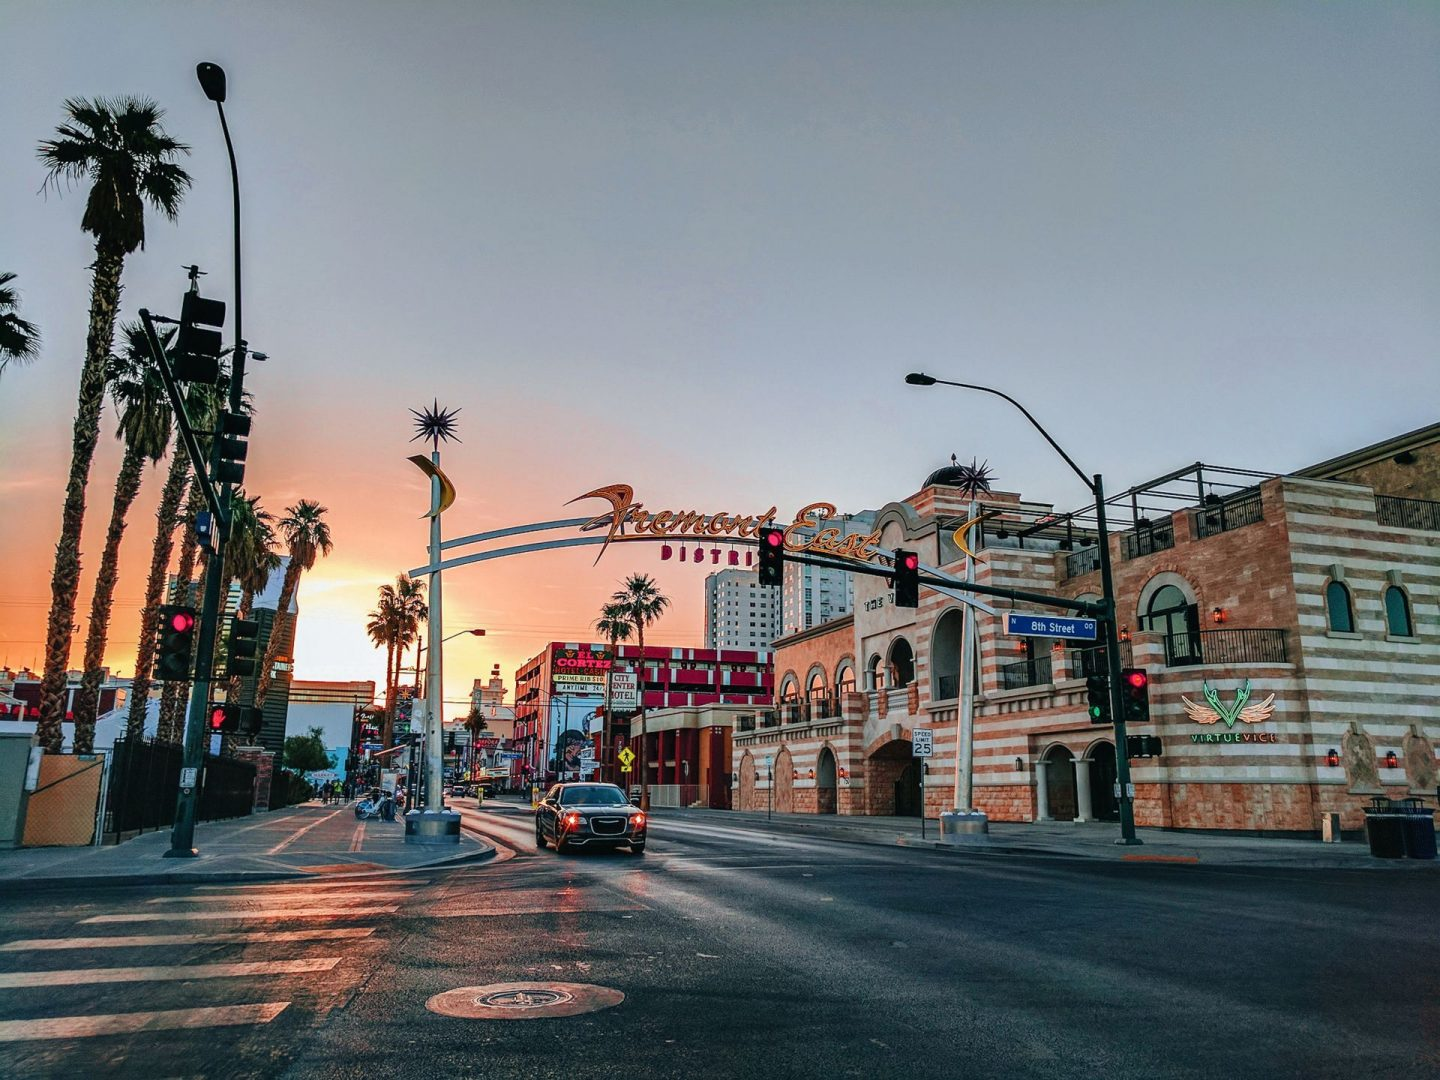 las vegas in the united states of america, US, USA, road trip, 20 trips to take in your 20s, travel inspiration